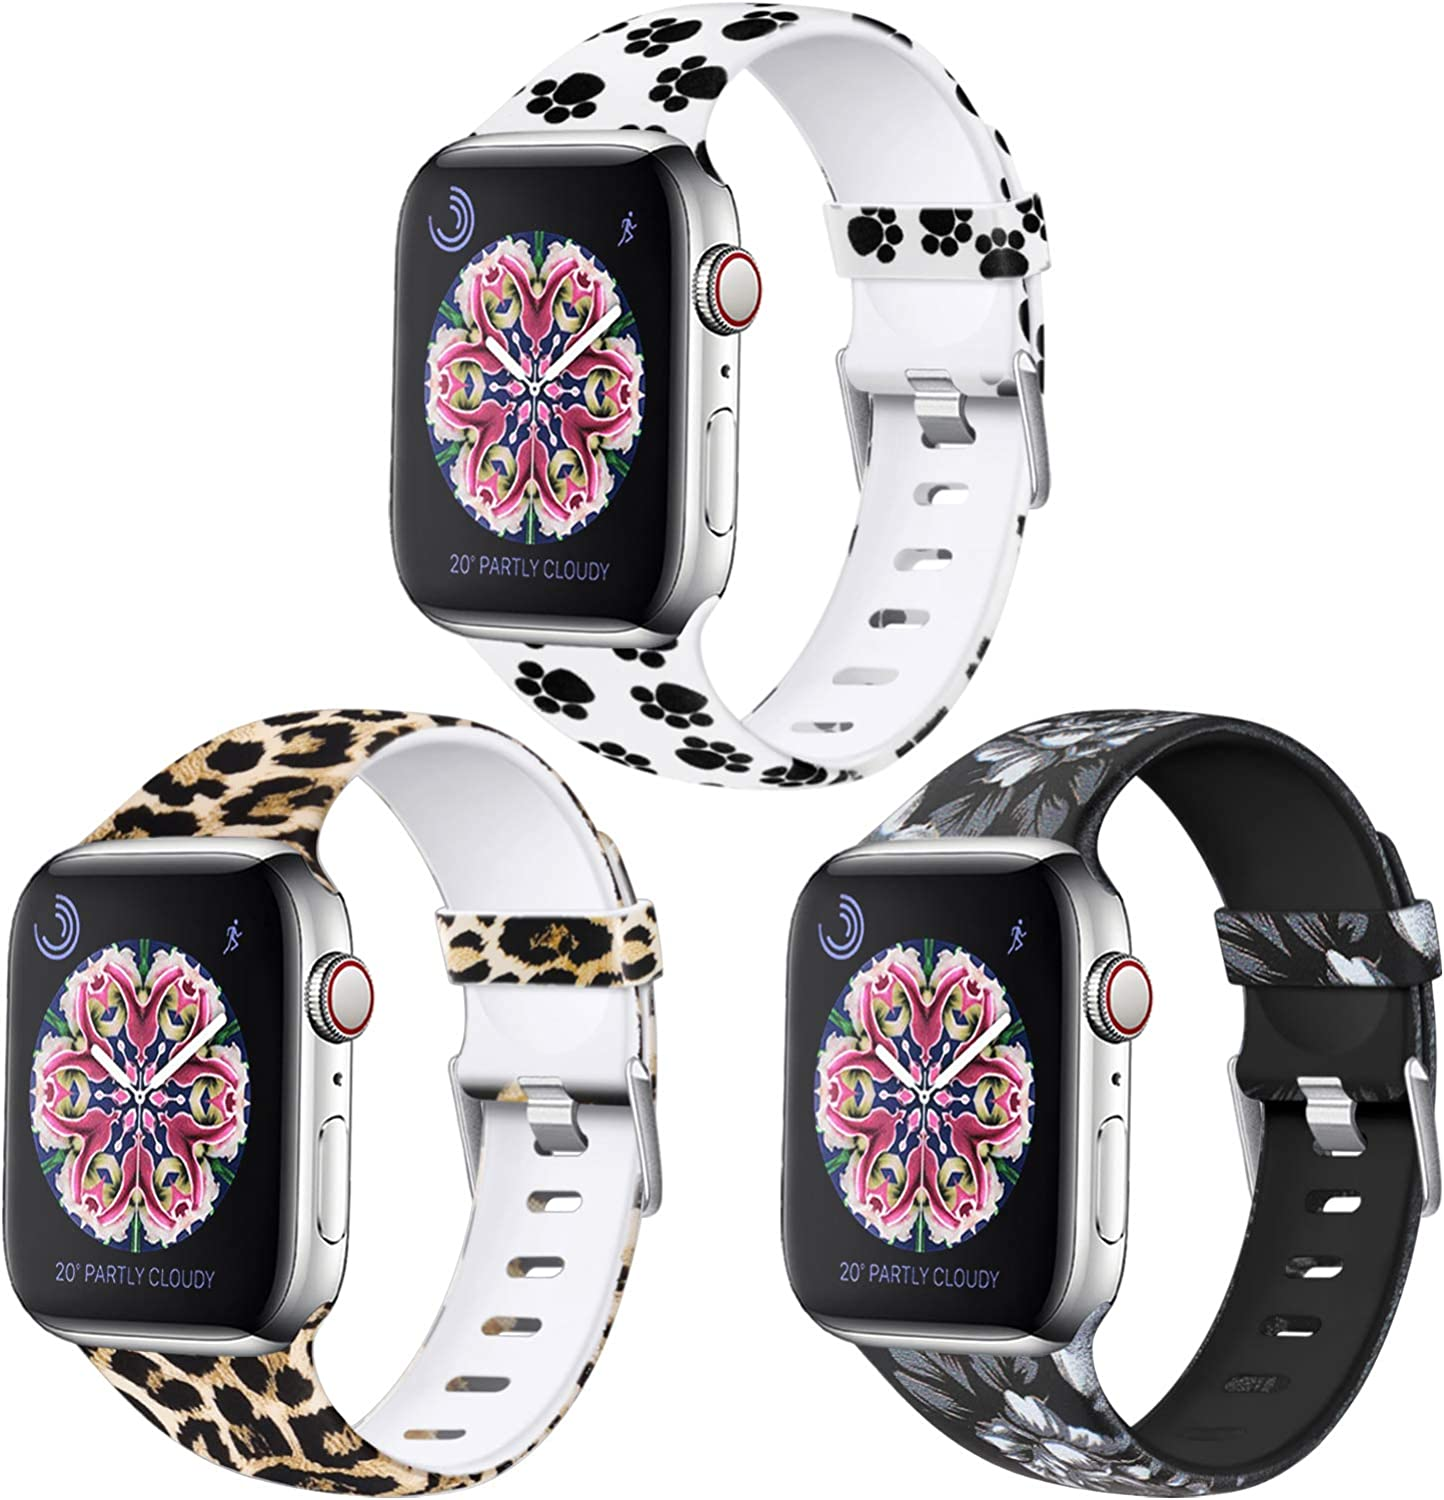 Laffav Compatible 3 Pack Bands with Apple Watch 41mm 40mm 38mm 45mm 44mm 42mm for Women Men, Soft Silicone Sport Pattern Replacement Strap Compatible with iWatch SE Series 7 & Series 6 5 4 3 2 1